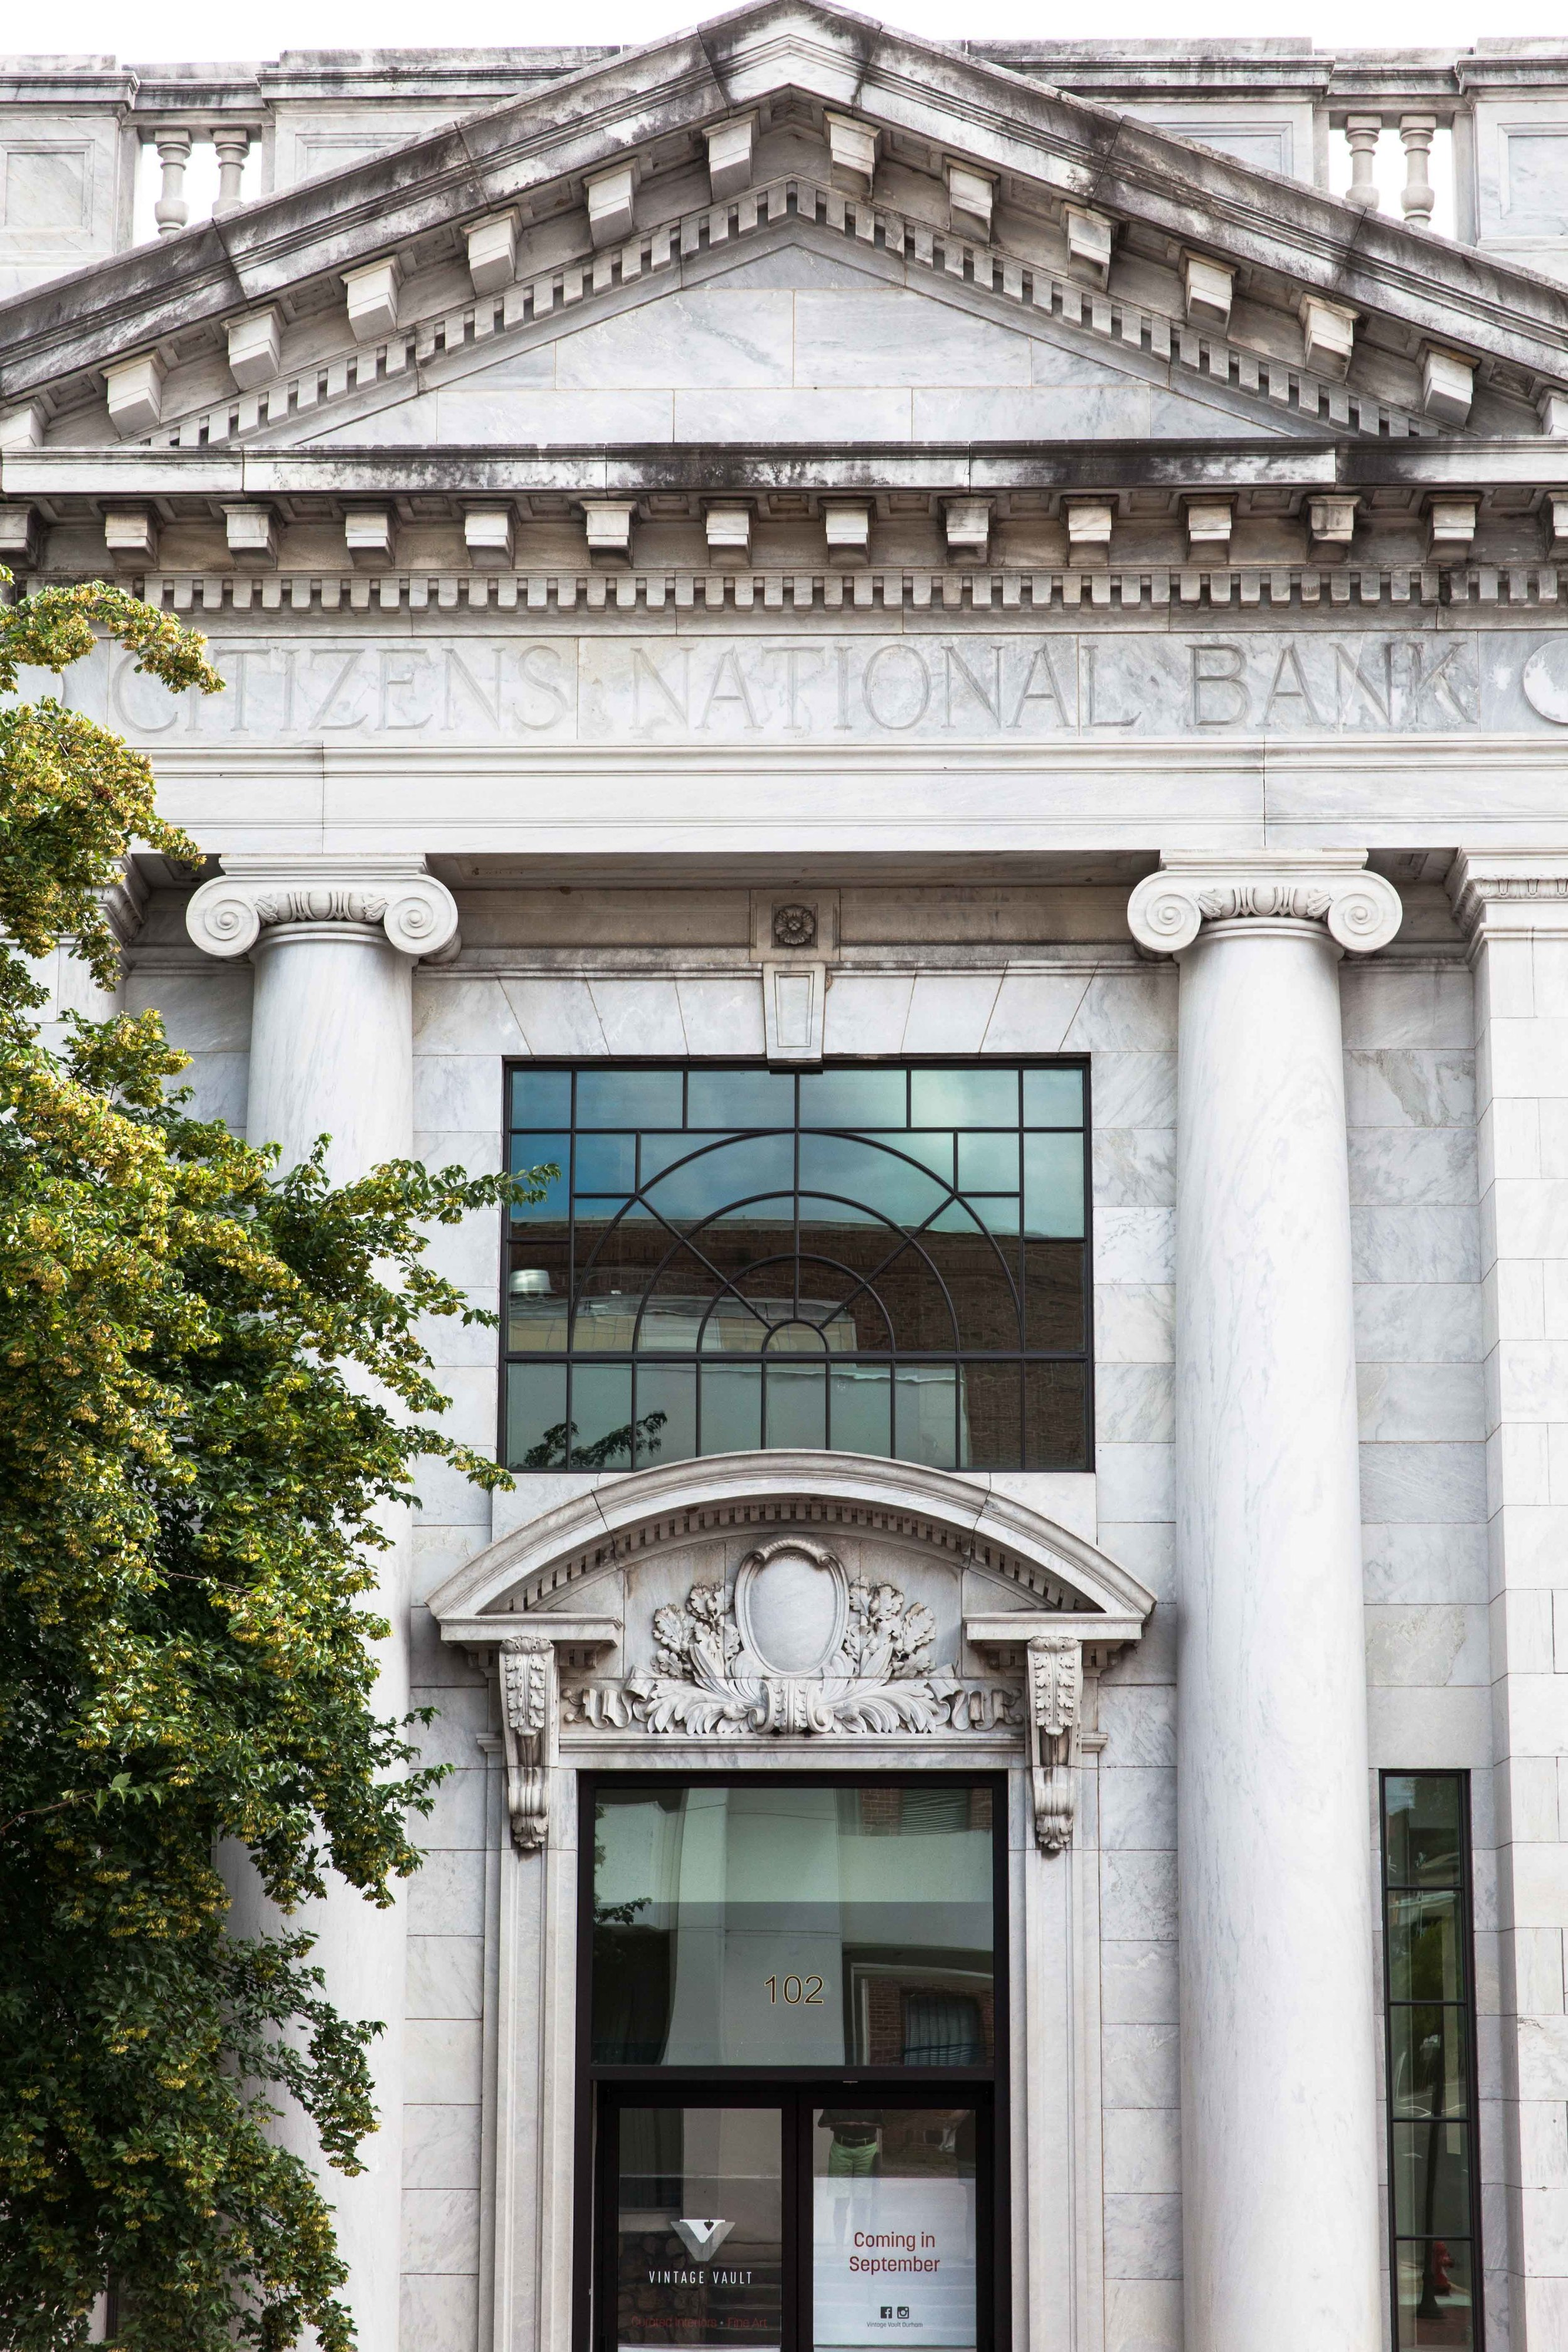 Vintage Vault will launch in the historic Citizens National Bank building